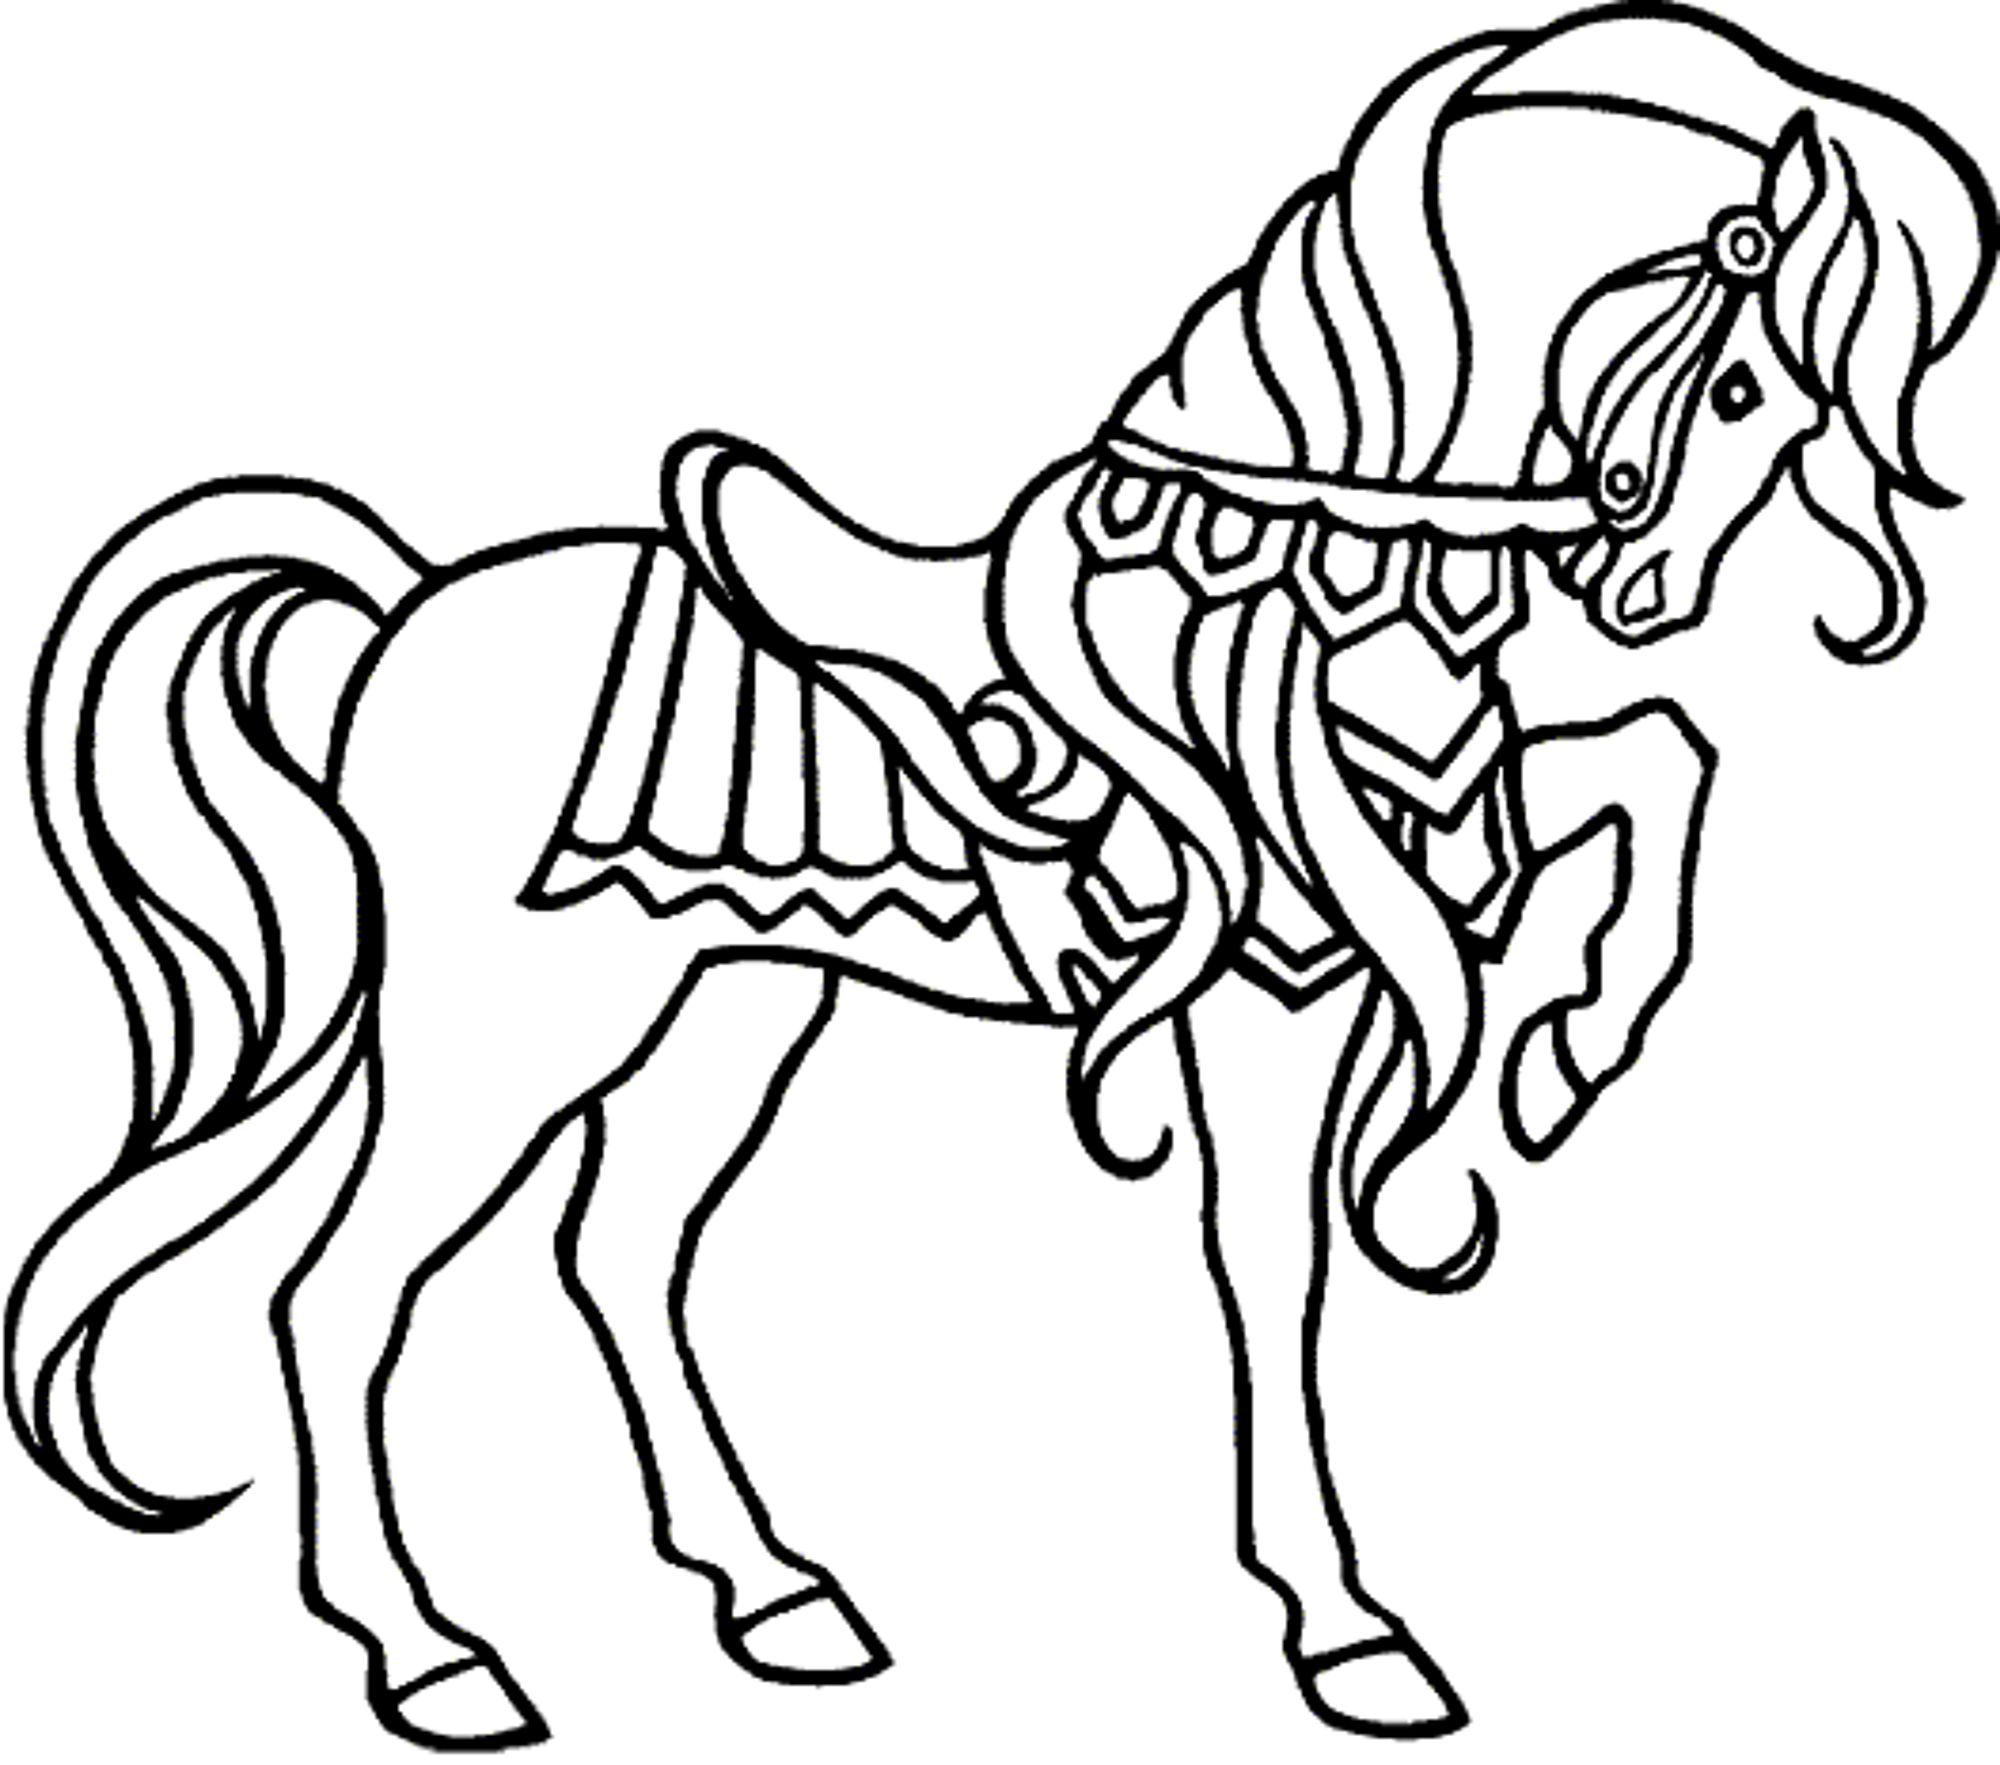 Horse Coloring Pages For Girls Printable Kids Colouring Pages Animal Coloring Pages Horse Coloring Pages Horse Coloring Books